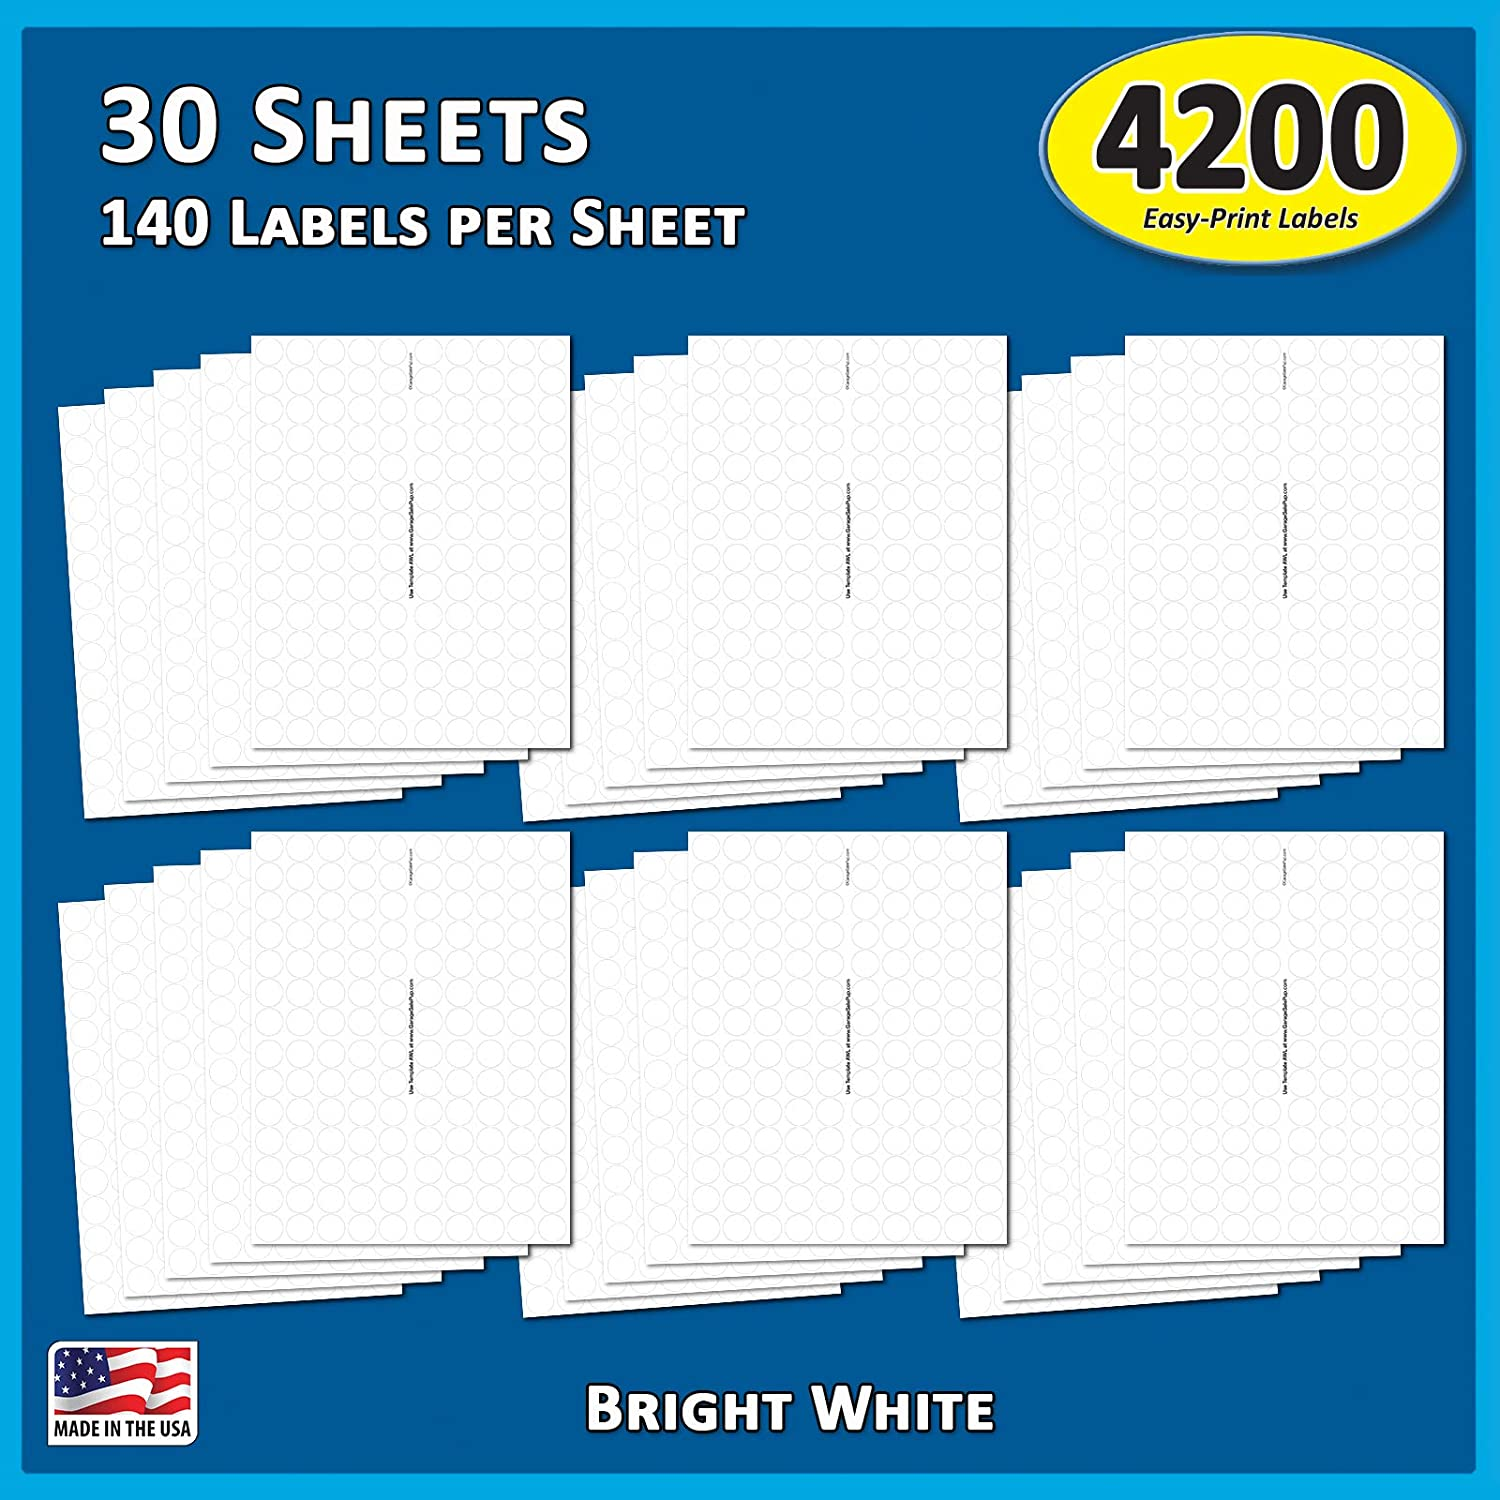 Pack of 4200, 3/4 inch Round Circle Dot Labels, 8 1/2 x 11 Inch Sheet, Fits All Laser/Inkjet Printers : Office Products